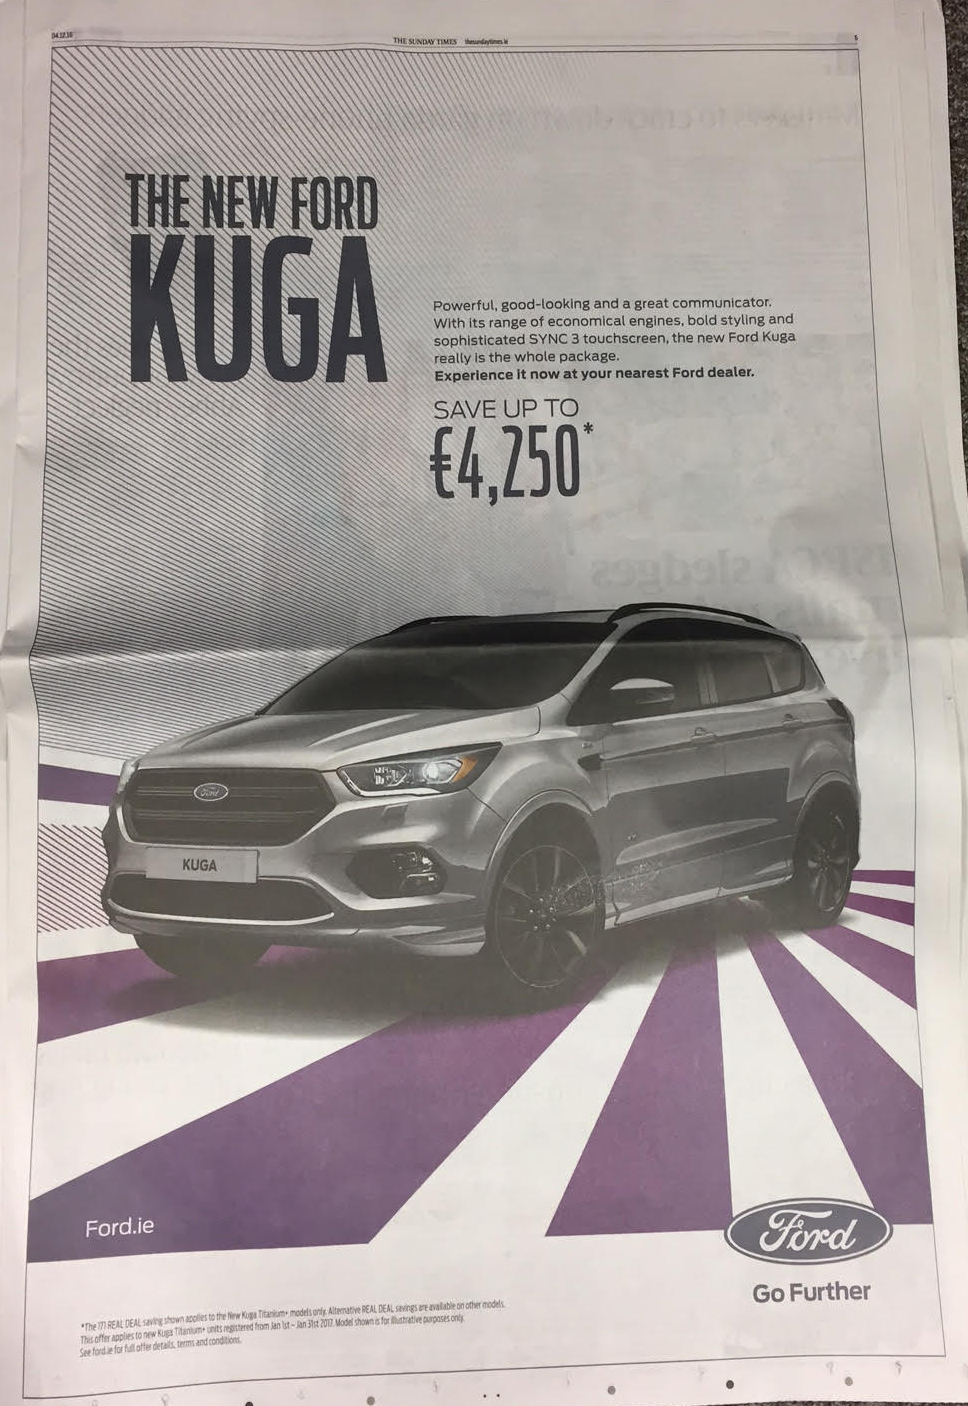 Ford Kuga – the new Ford Kuga save up to €4,250